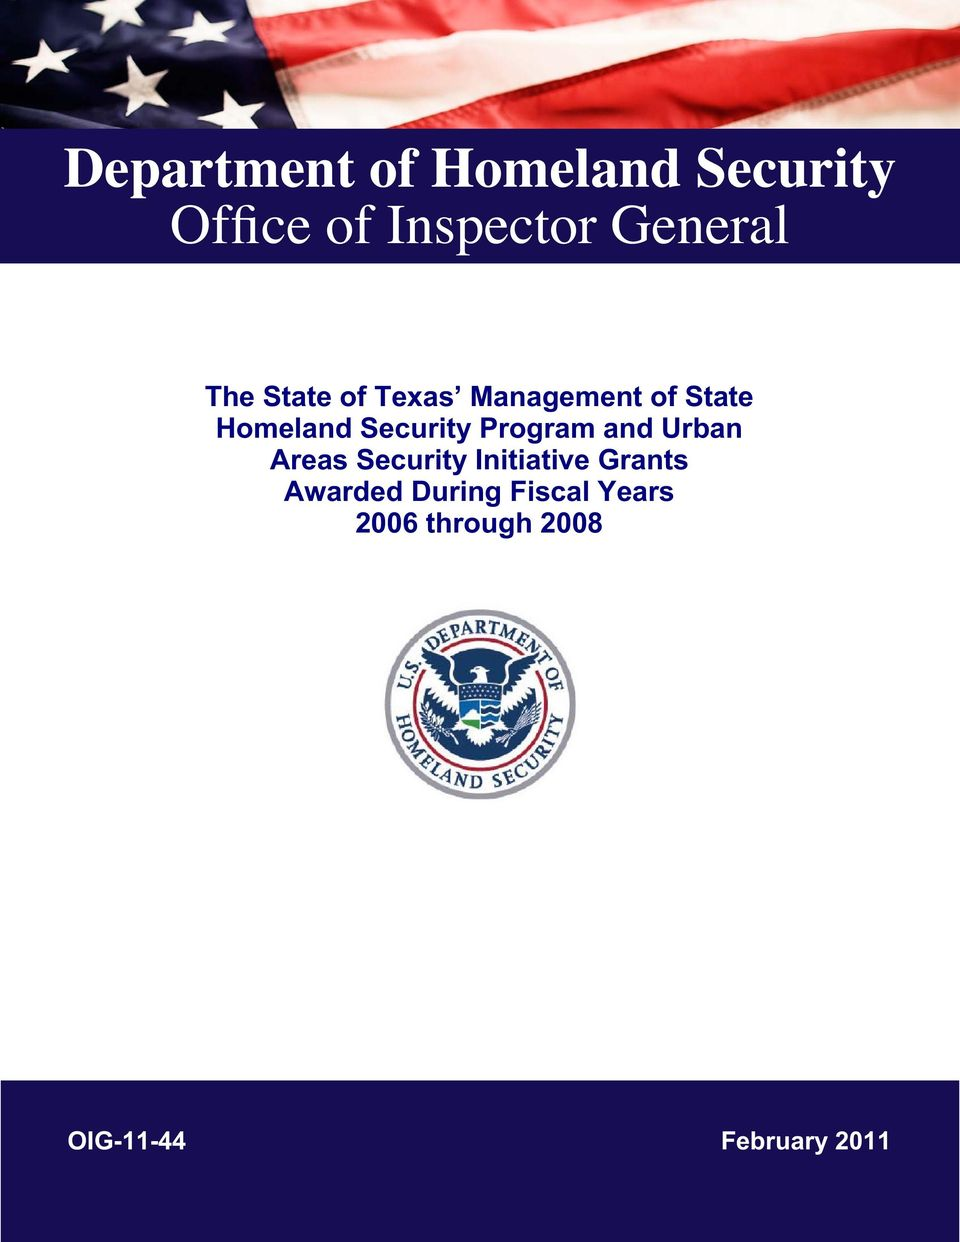 Program and Urban Areas Security Initiative Grants Awarded